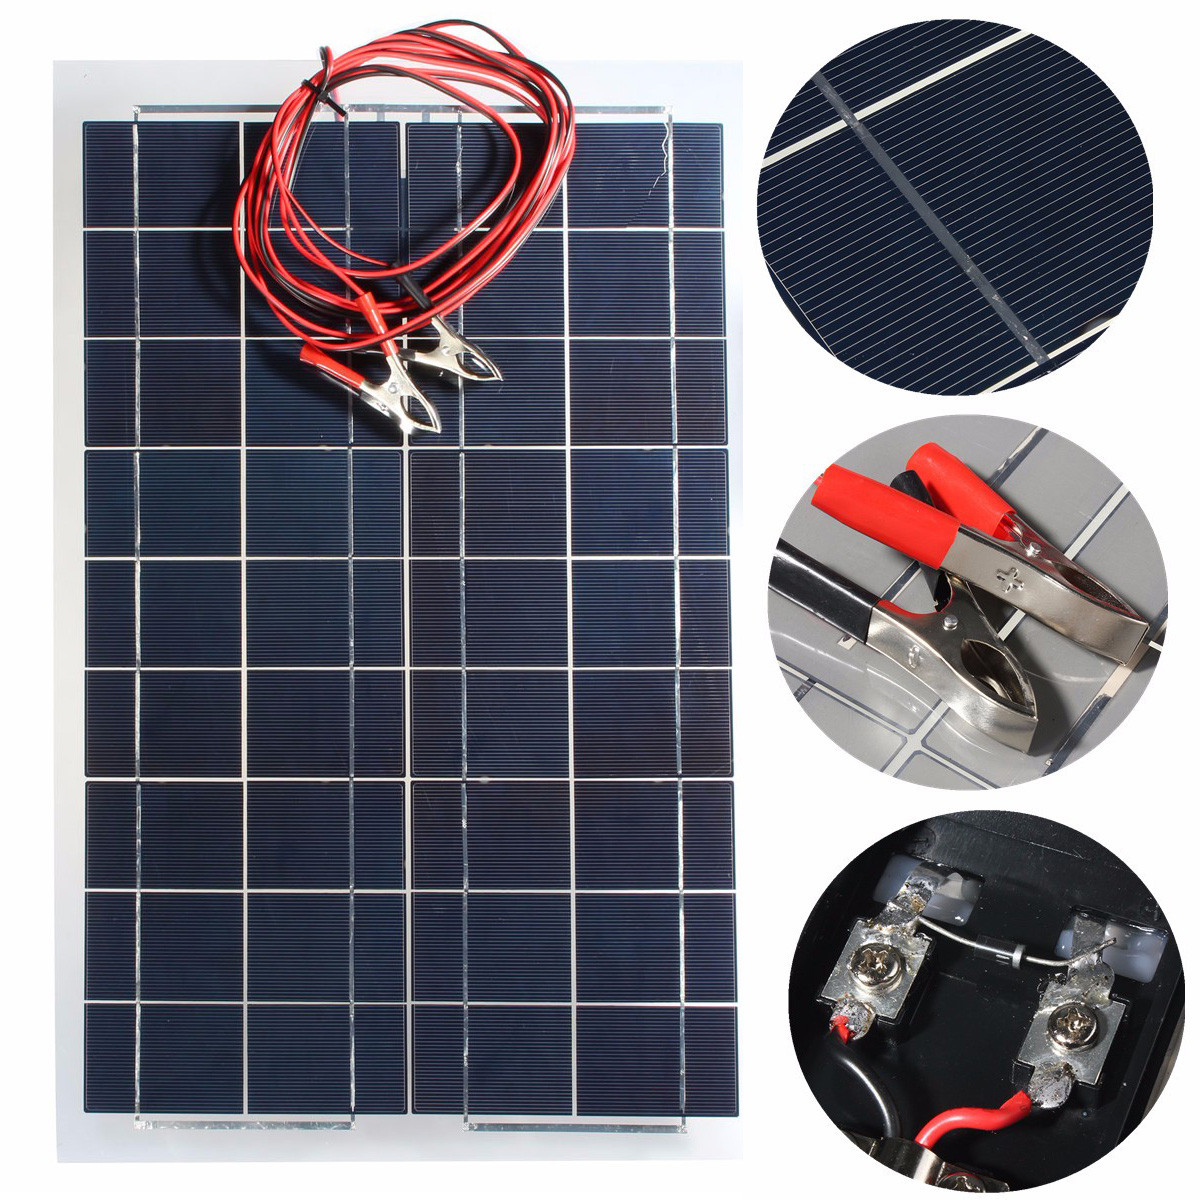 30W 18V Solar Panel PolyCrystalline Solar Cells DIY Battery Charger With Alligator Clip Wire For Car RV Boat Camping Energy 3pcs battery and european regulation charger with 1 cable 3 line for mjx b3 helicopter 7 4v 1800mah 25c aircraft parts